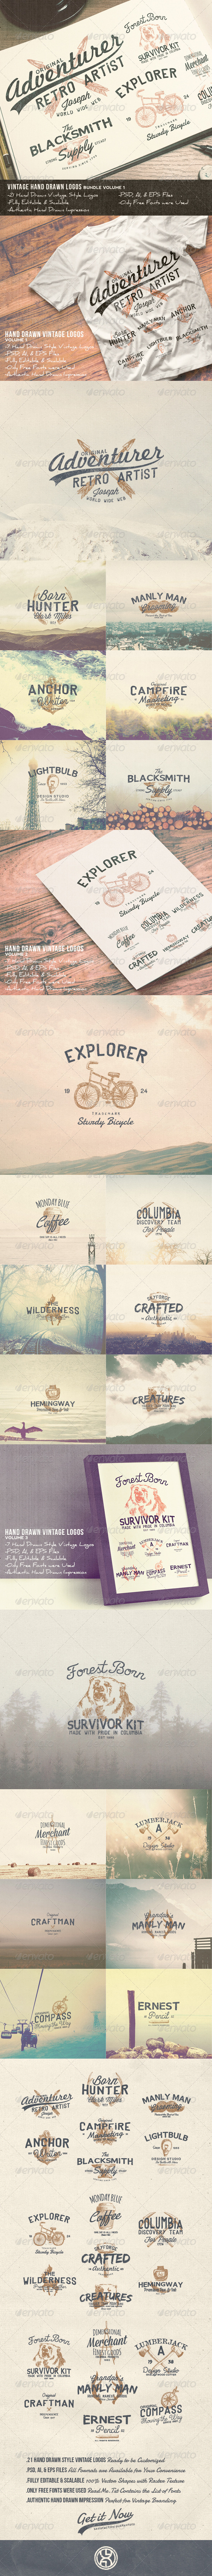 GraphicRiver 21 Hand Drawn Vintage Logos Bundle Volume 1 7781741